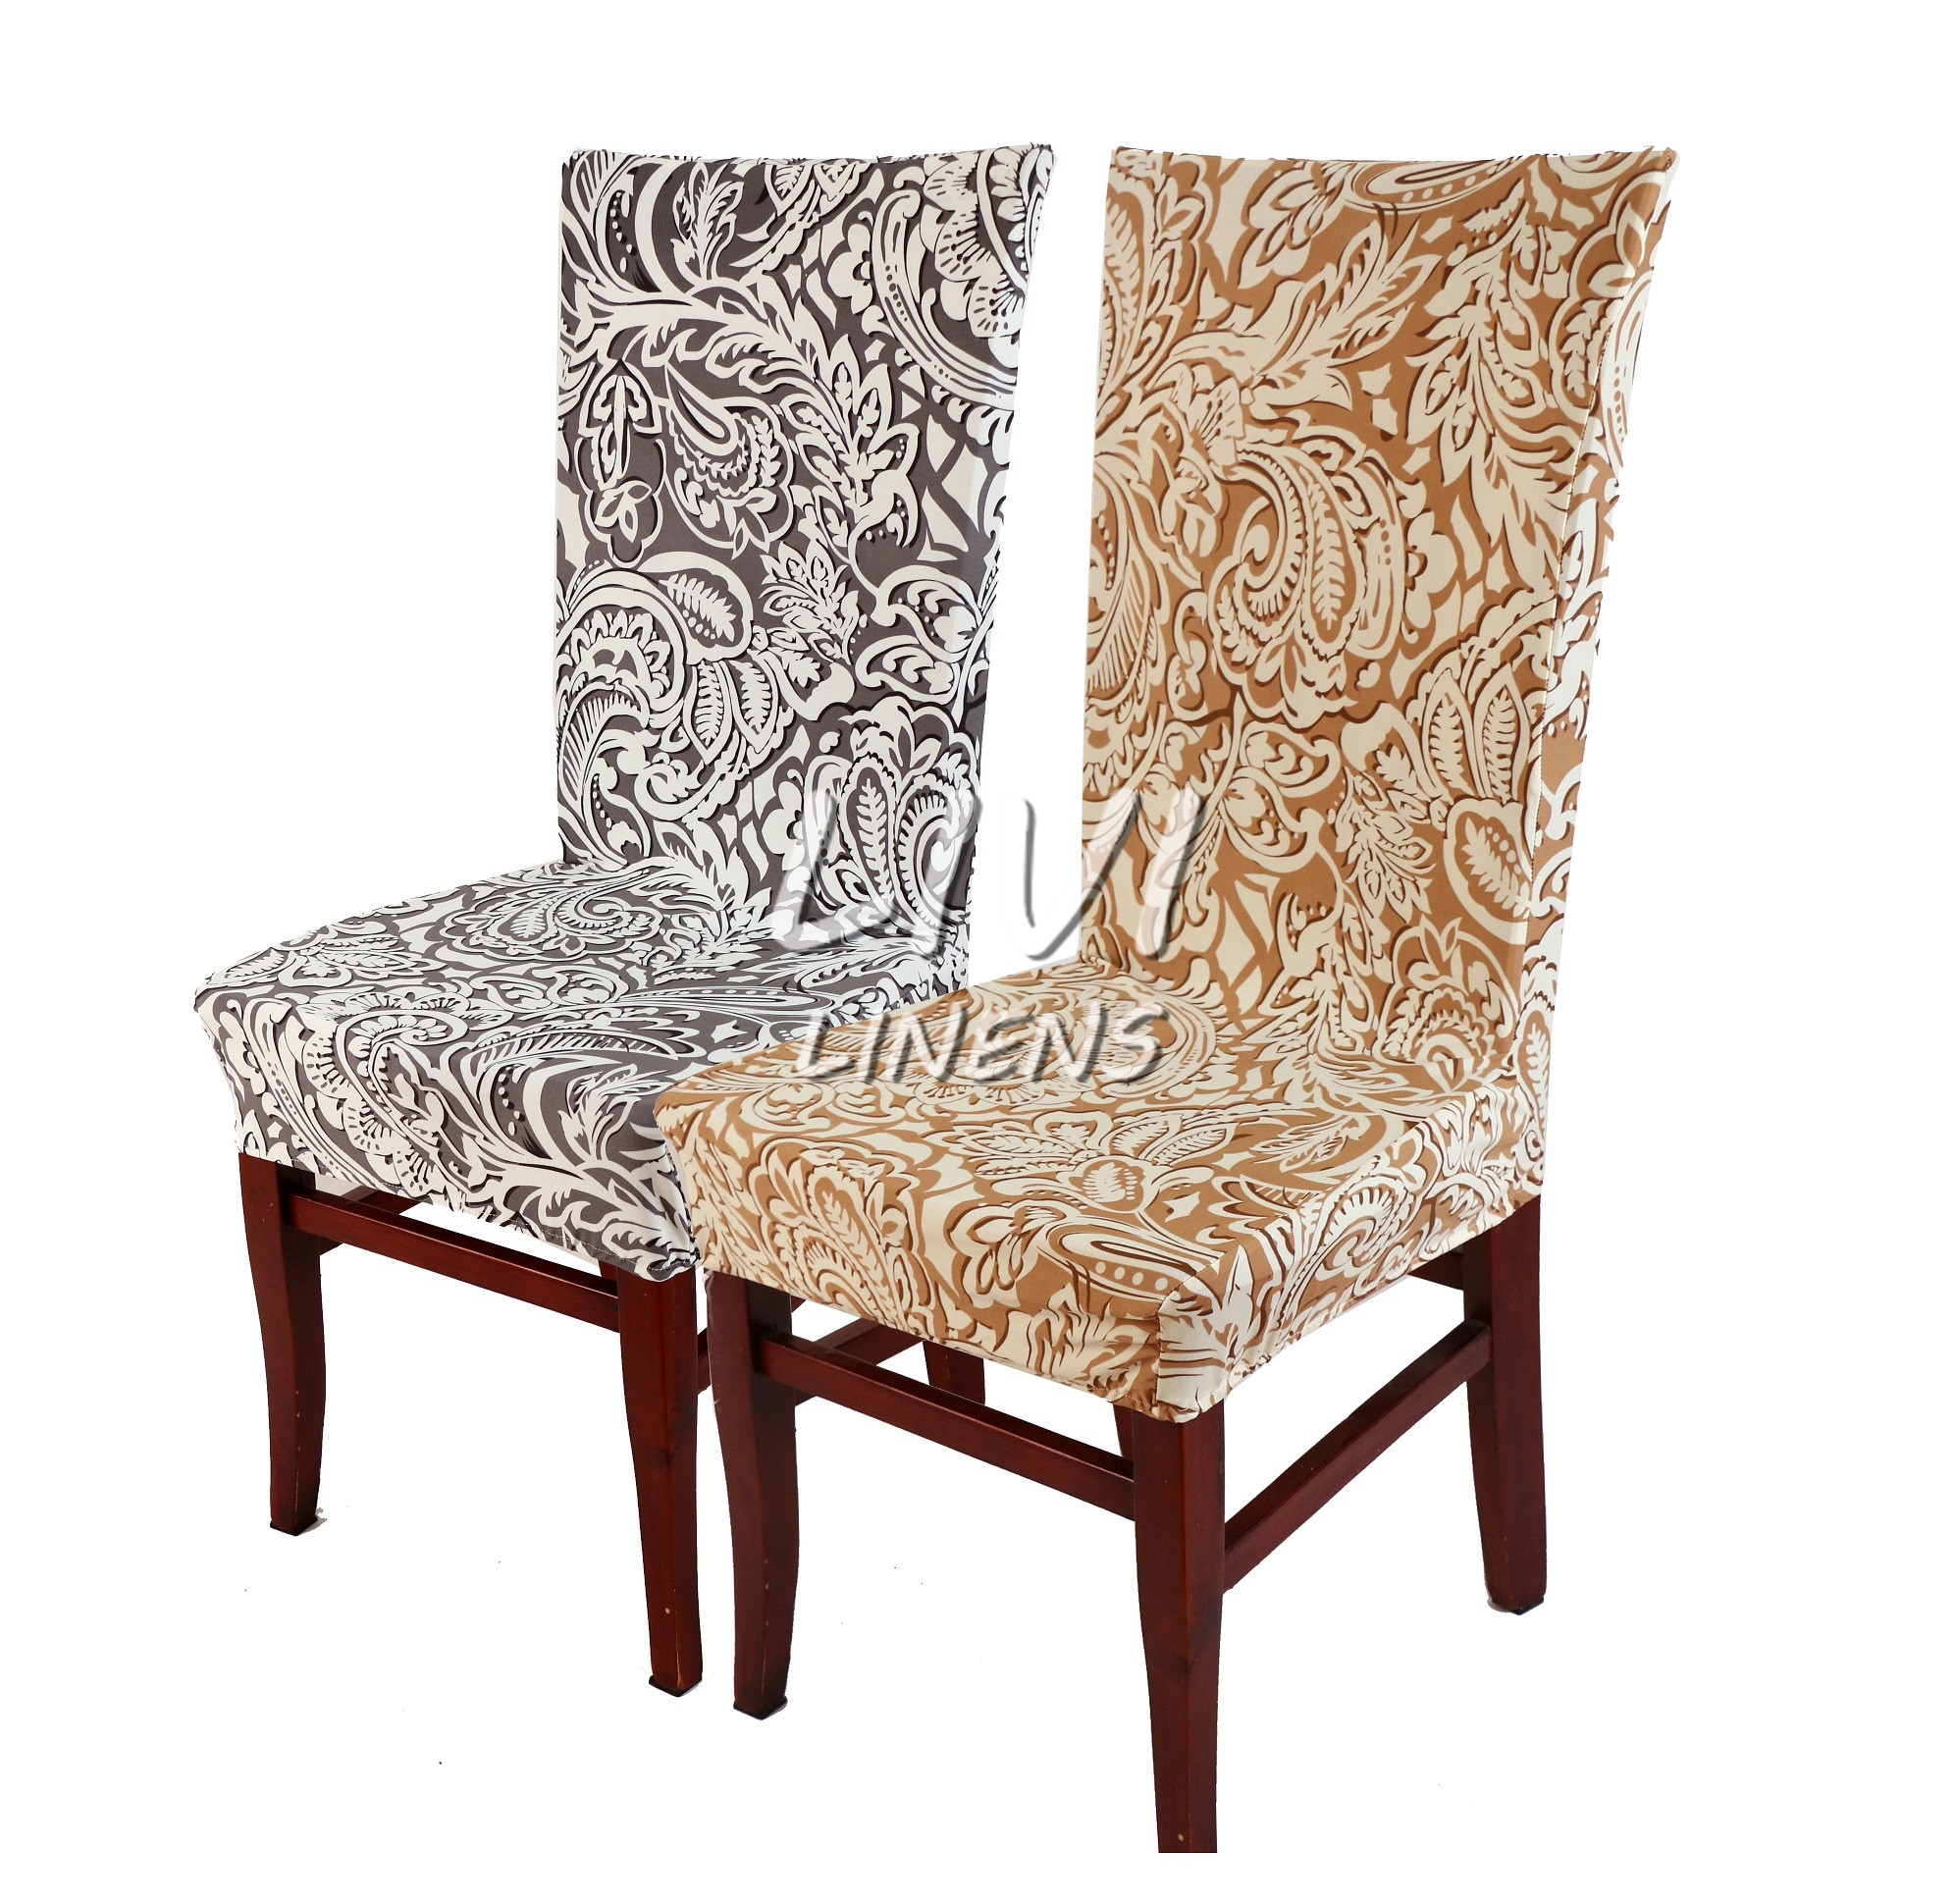 1PCS Printing flower Spandex Stretch Dining Chair Cover Restaurant For Weddings Banquet Folding Hotel Chair Covering(China (Mainland))